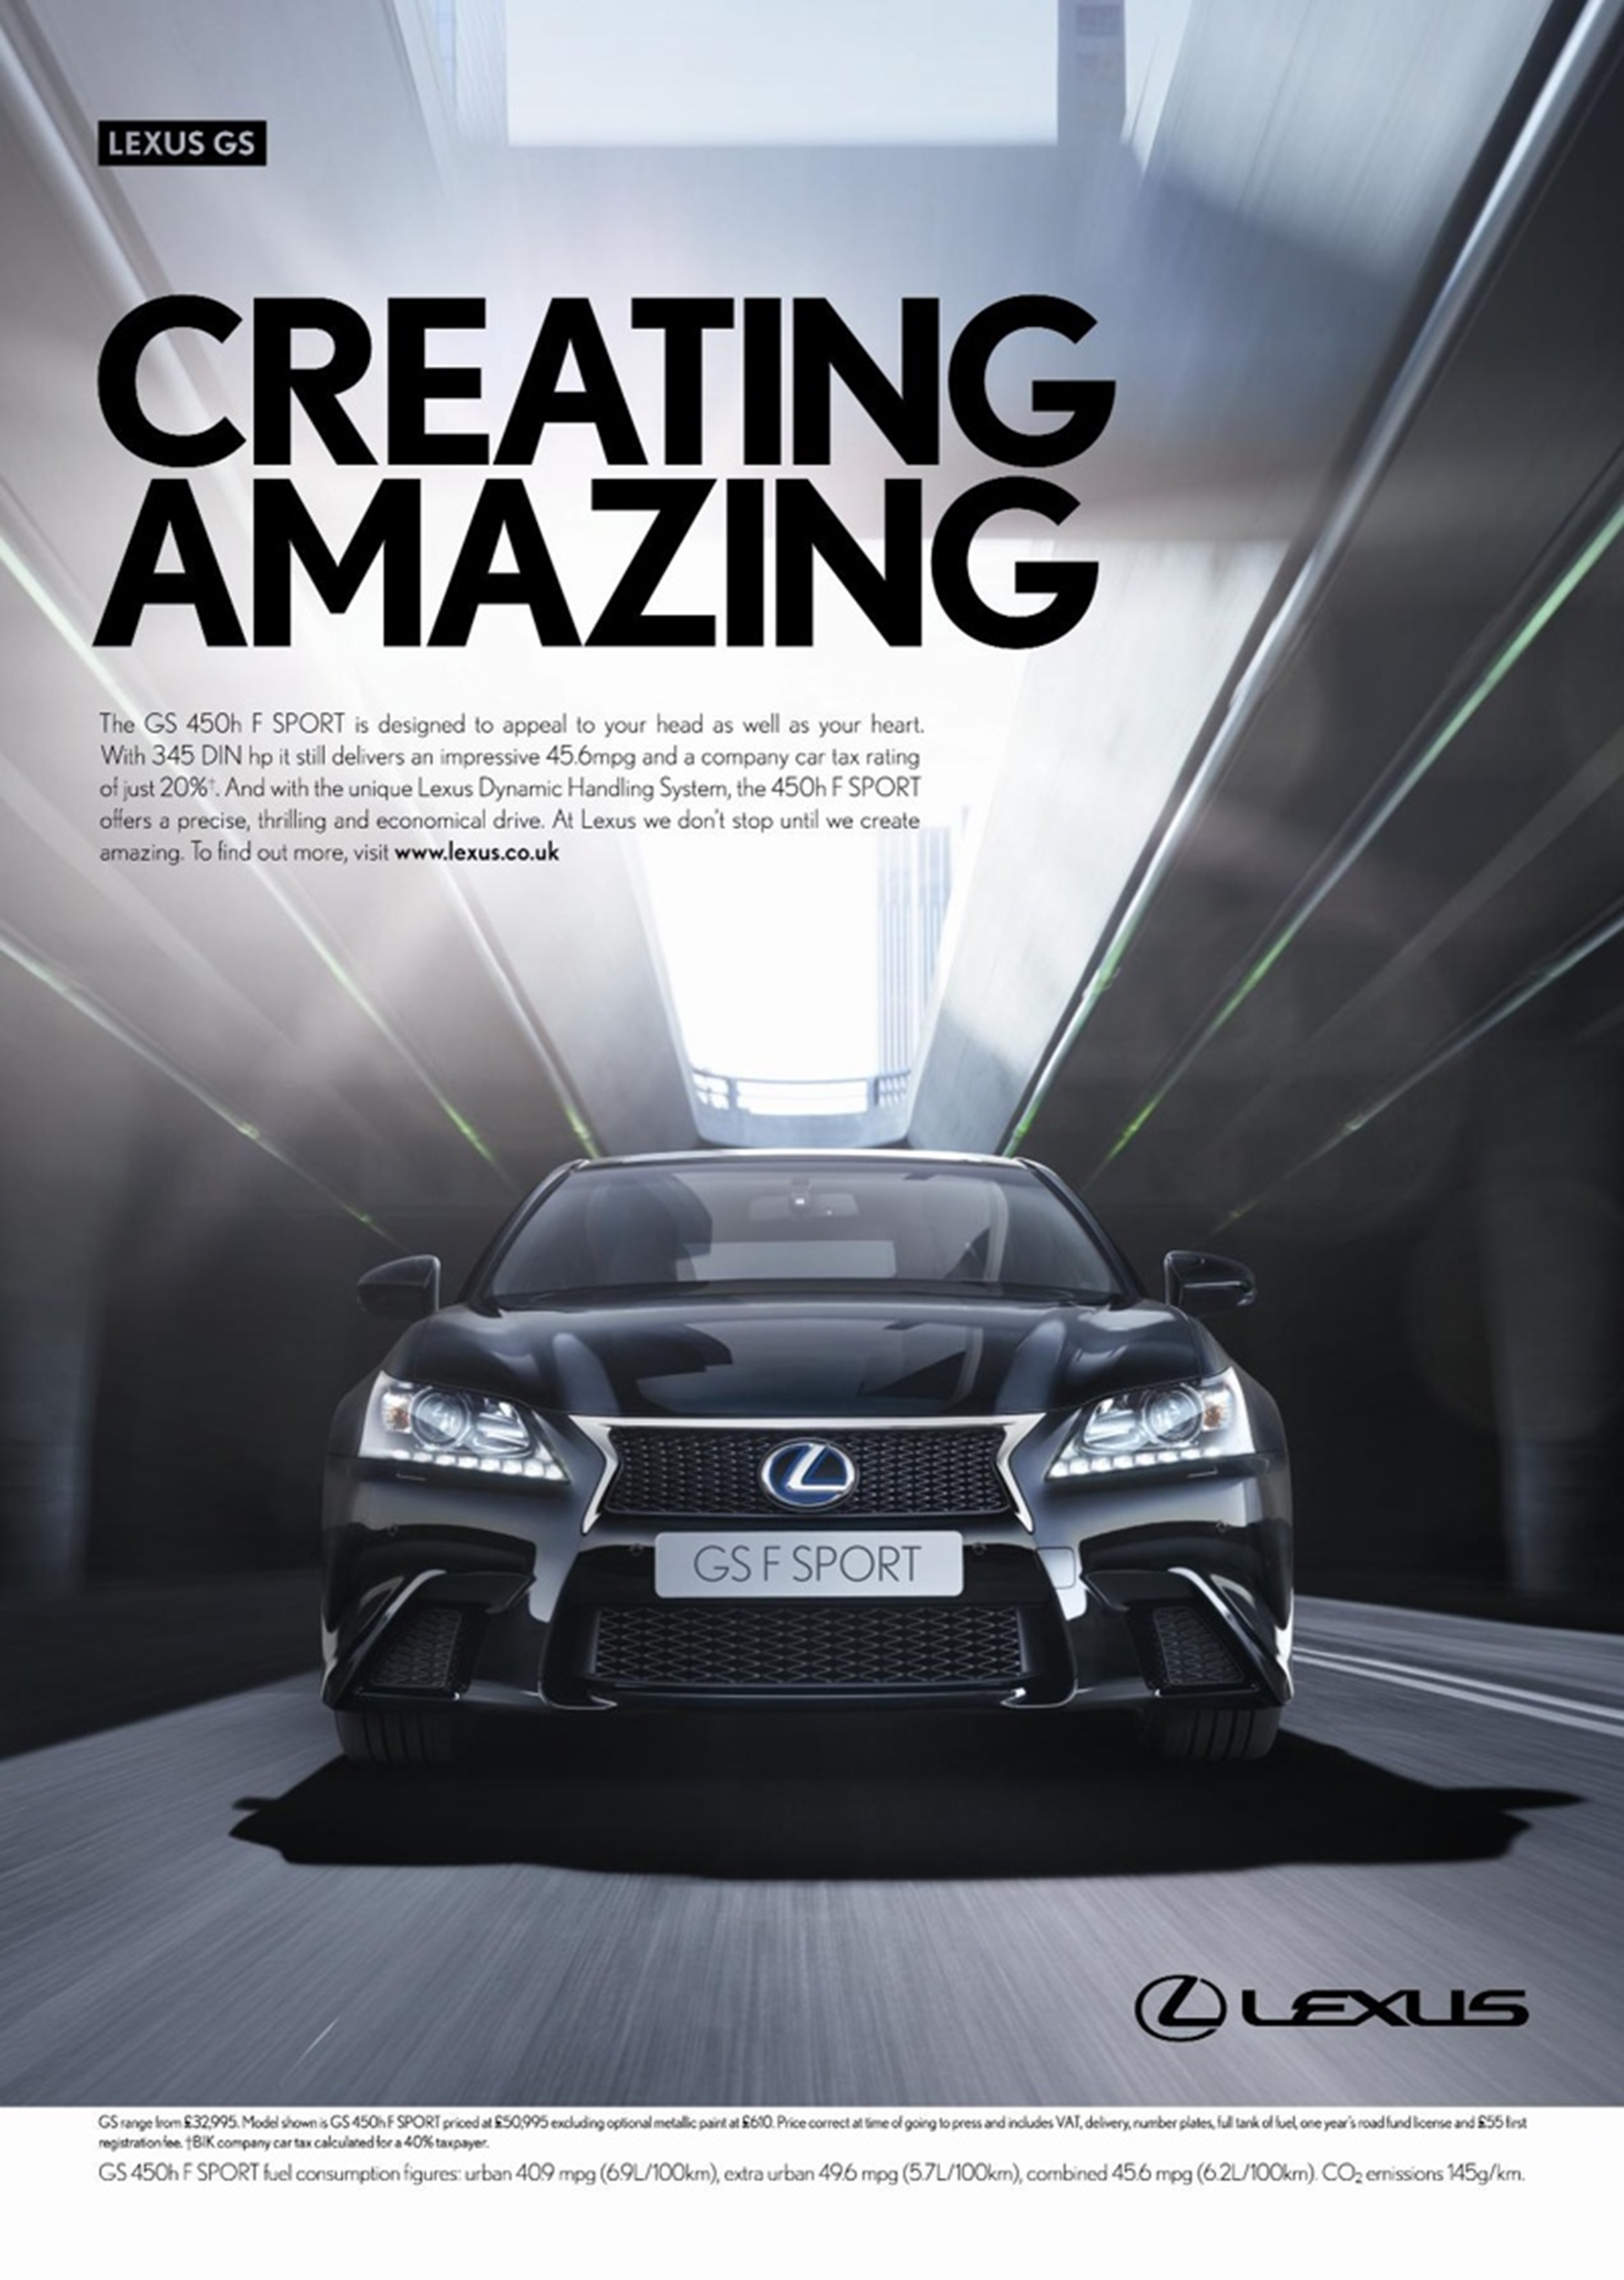 lexus marketing strategies Focus on product and market focus on detailed marketing strategies for achieving the product's objectives in a target market  lexus/infiniti.